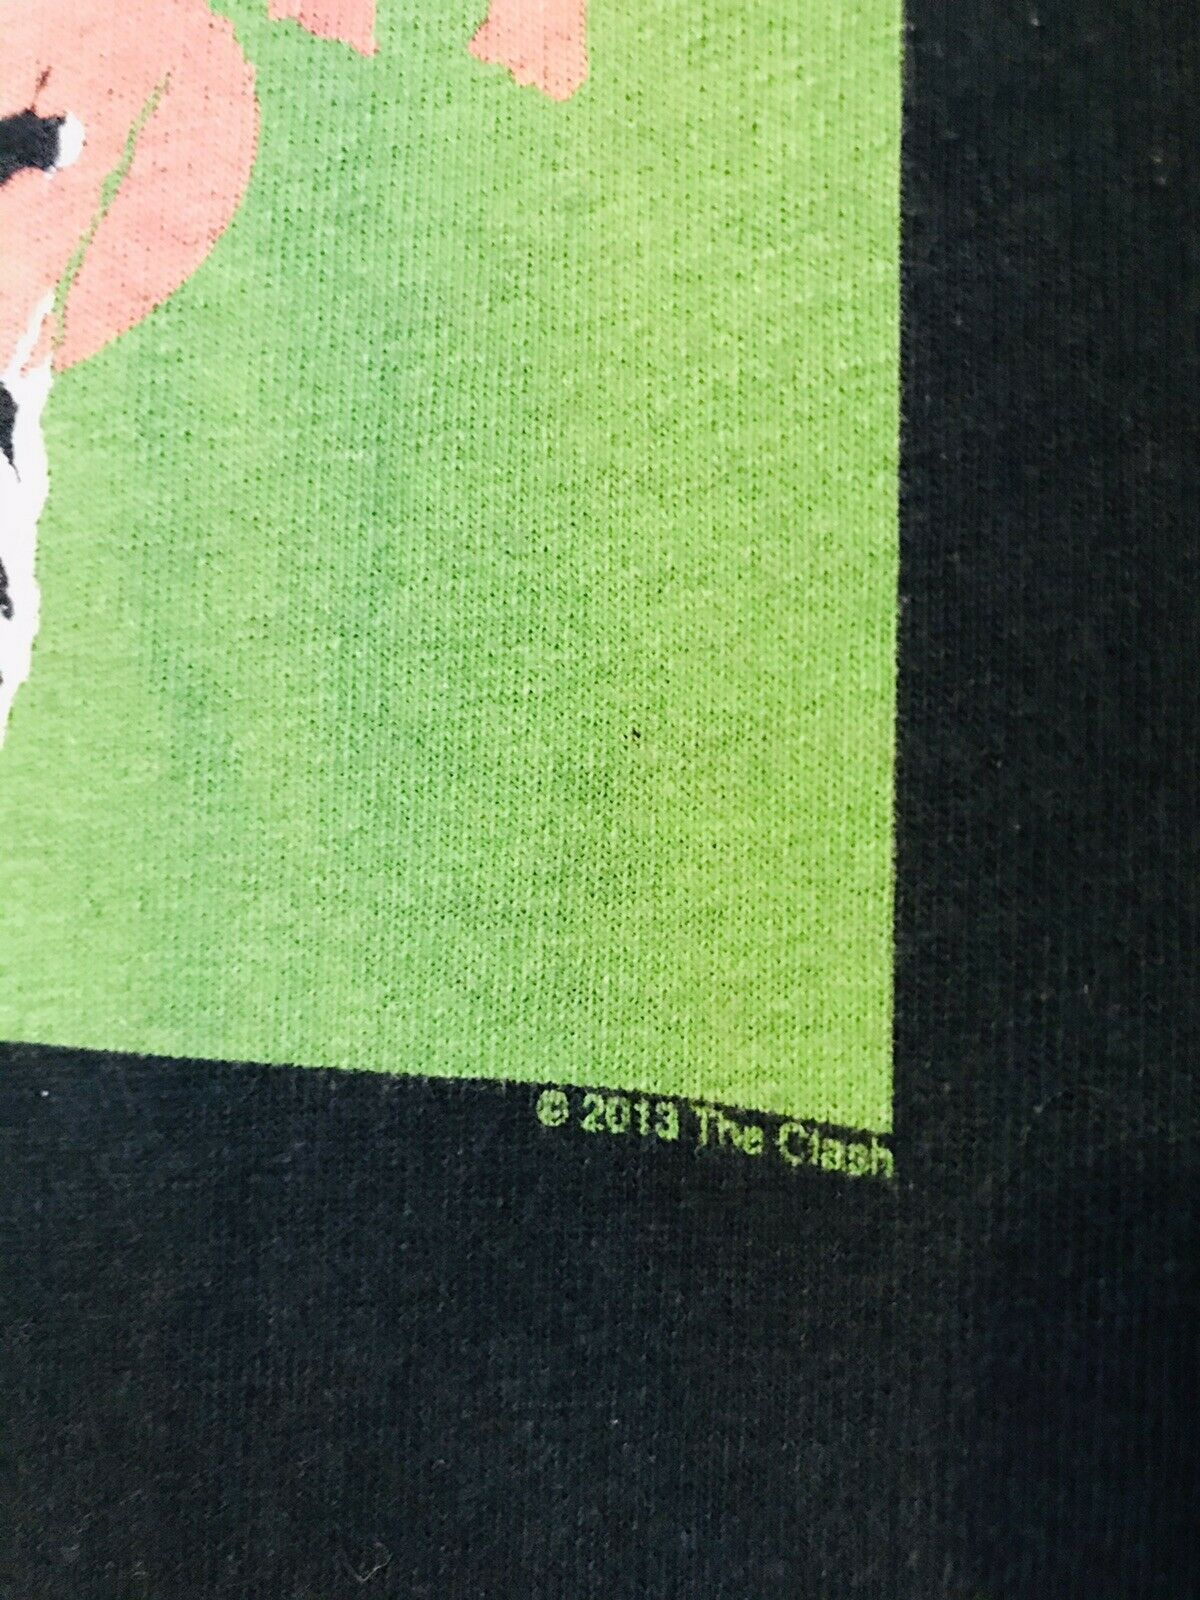 The Clash 3XL Distressed T Shirt not cd - image 3